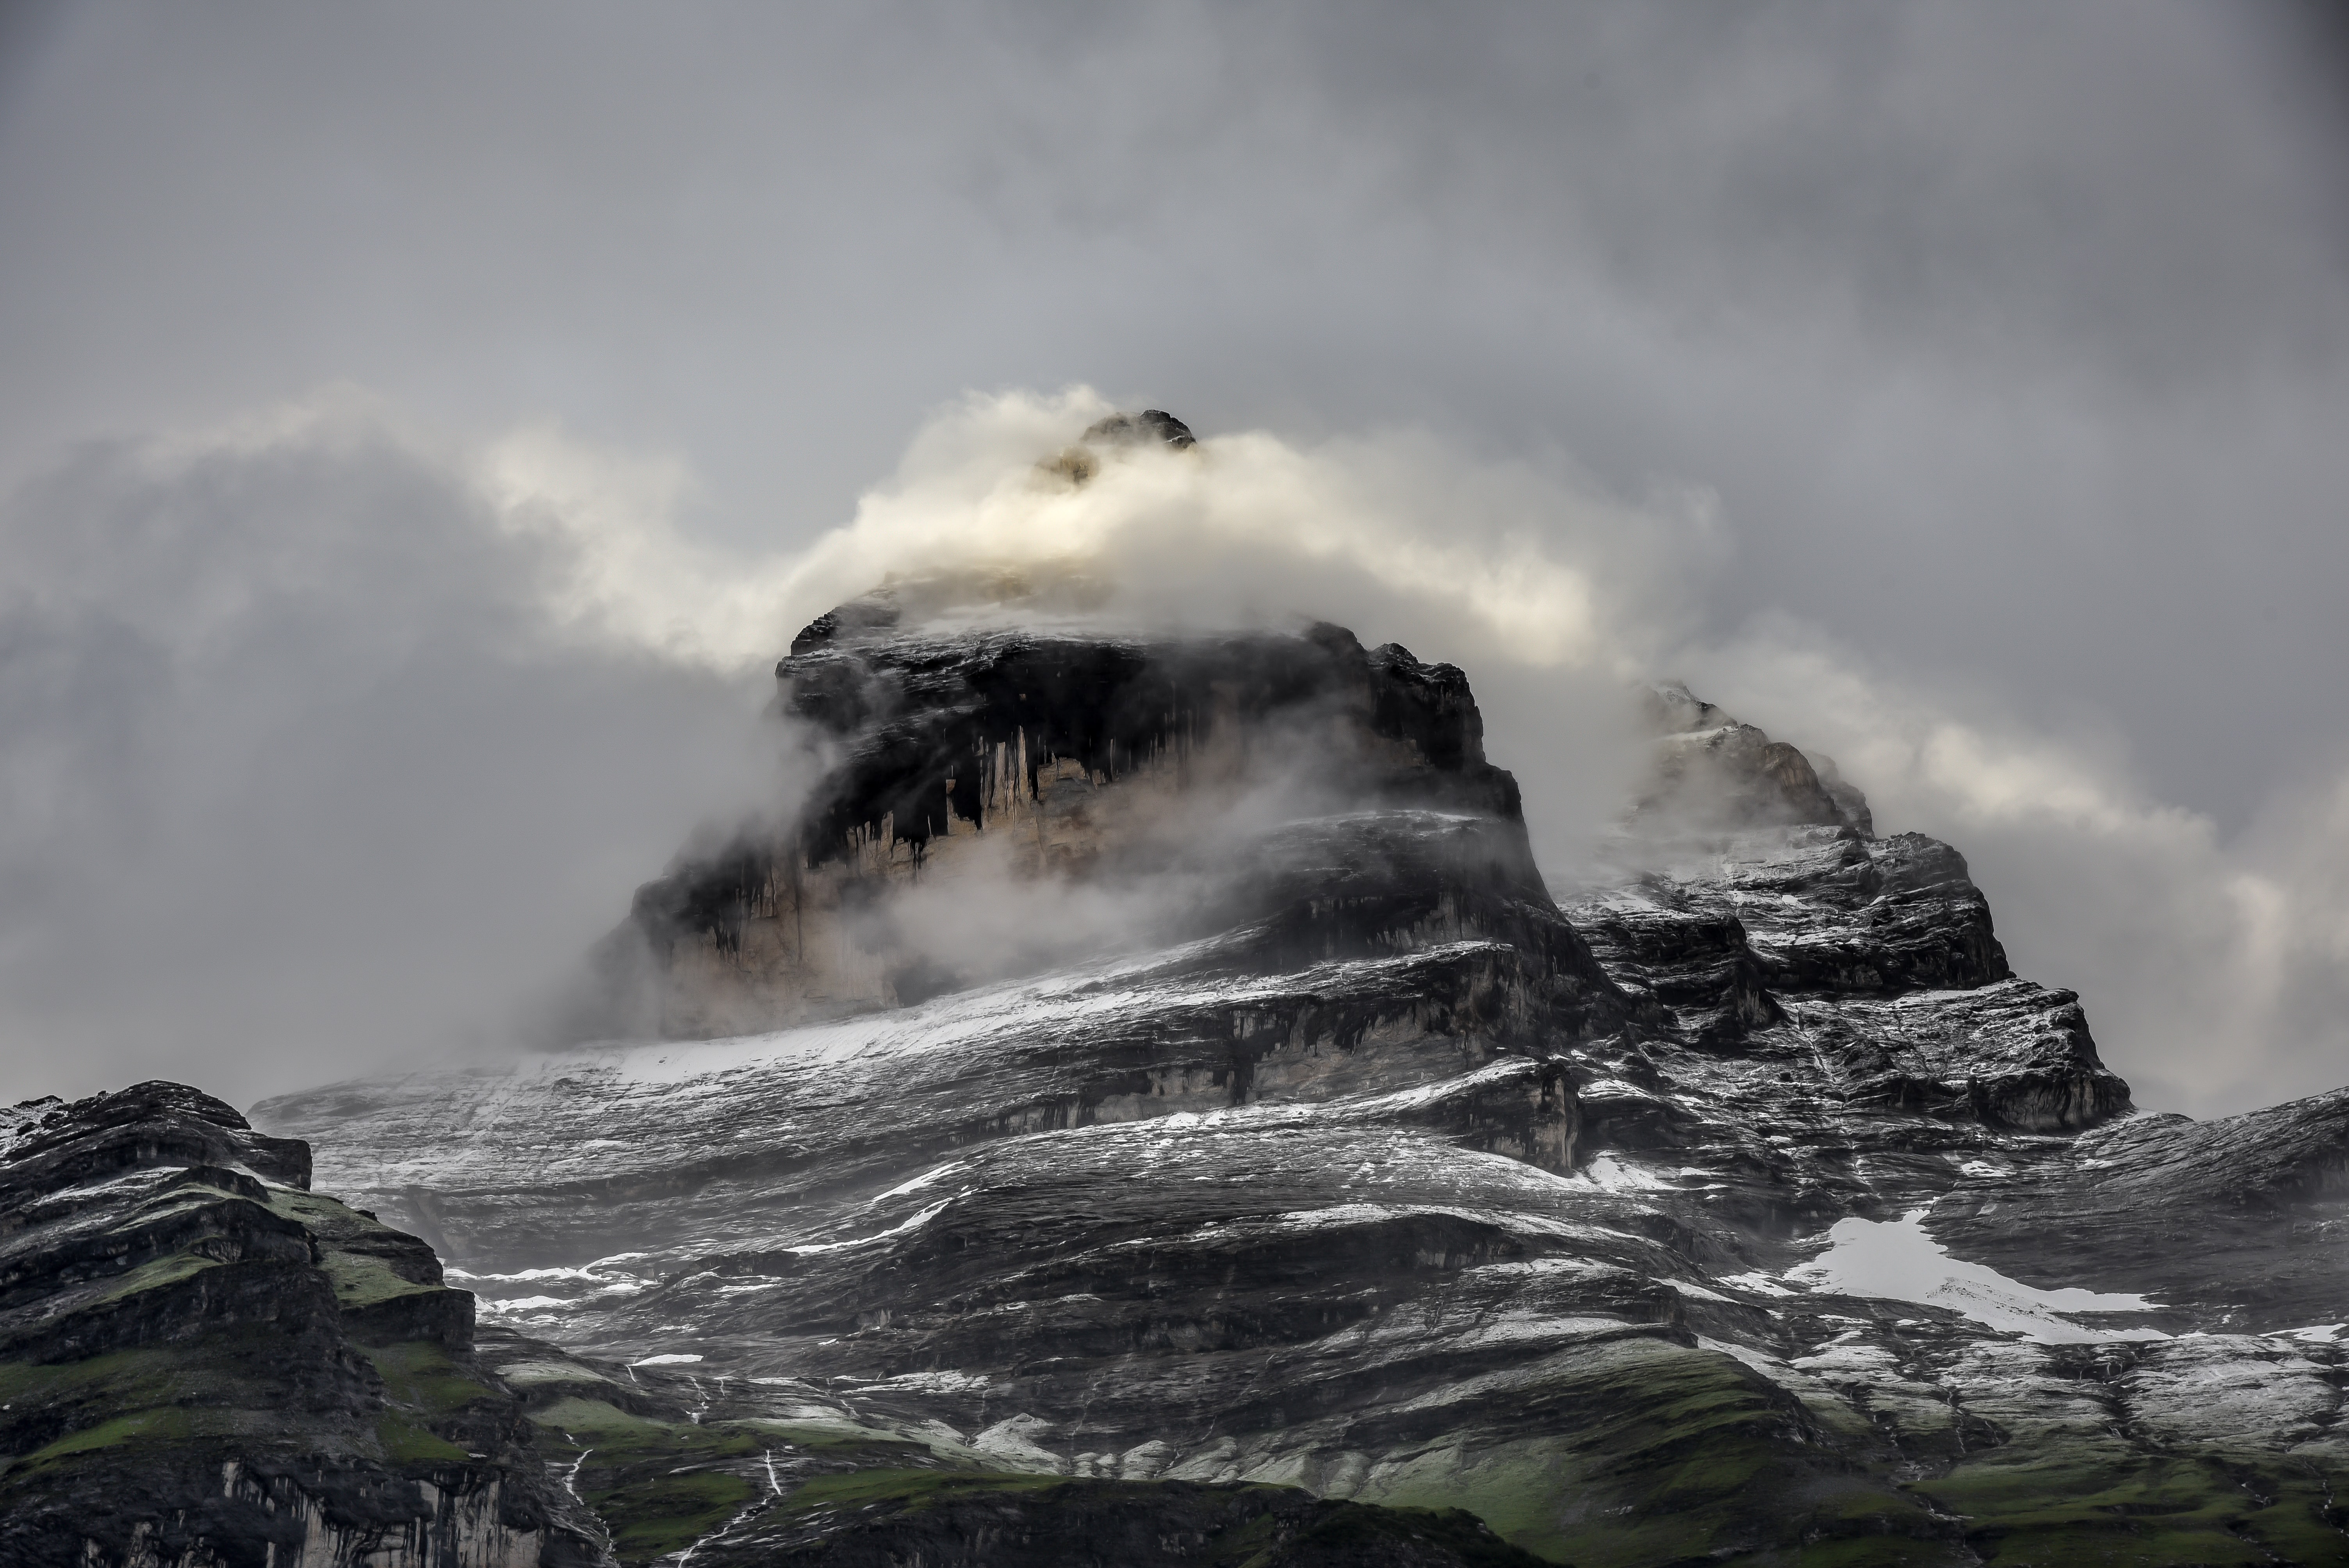 Mist covers a rocky mountain crag in Mürren